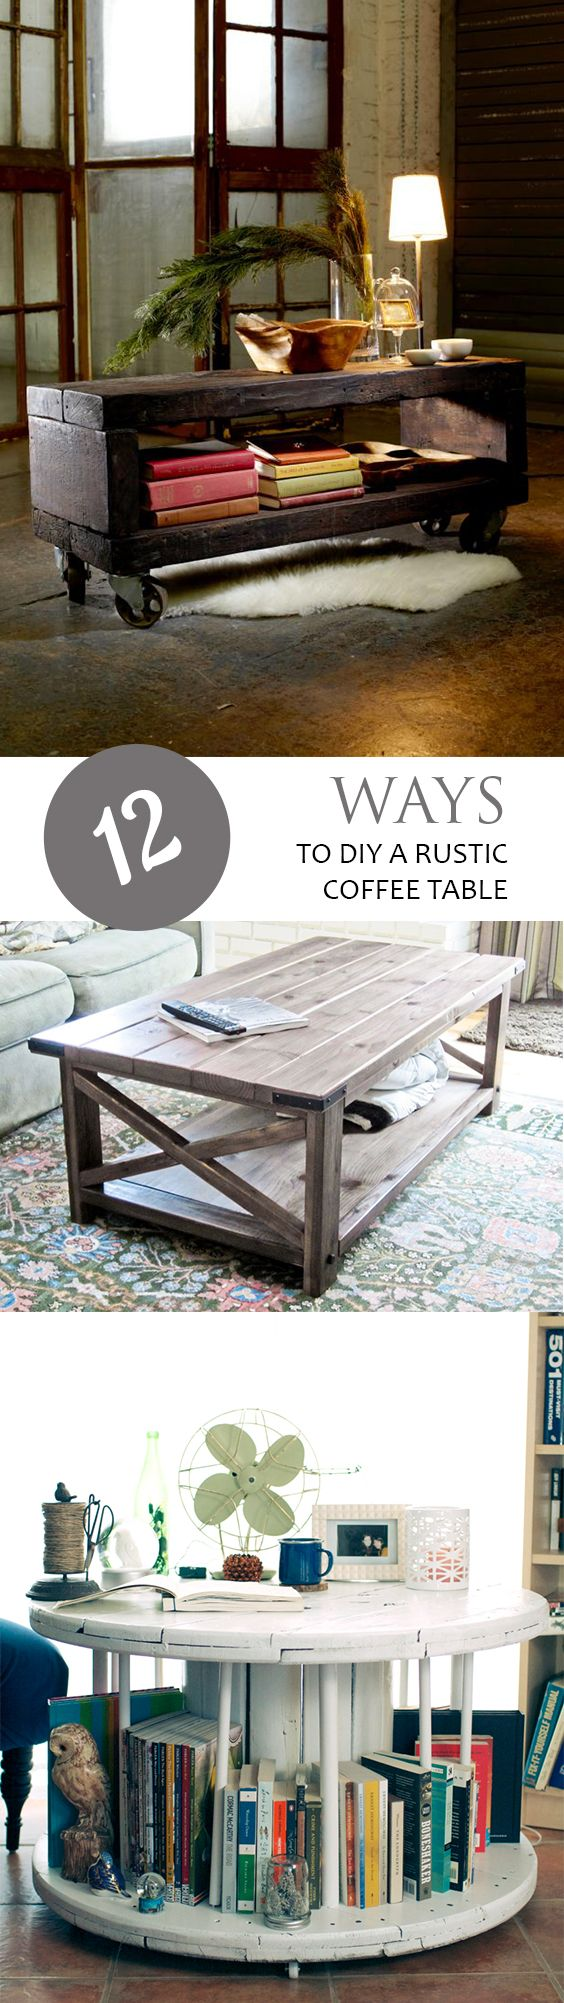 DIY Coffee Table, Easy DIY Coffee Table, Coffee Table Tutorials, DIY Furniture, Easy DIY Furniture, Fast Furniture Projects, SImple DIY Home Projects, Popular Pin, Coffee Table DIYs